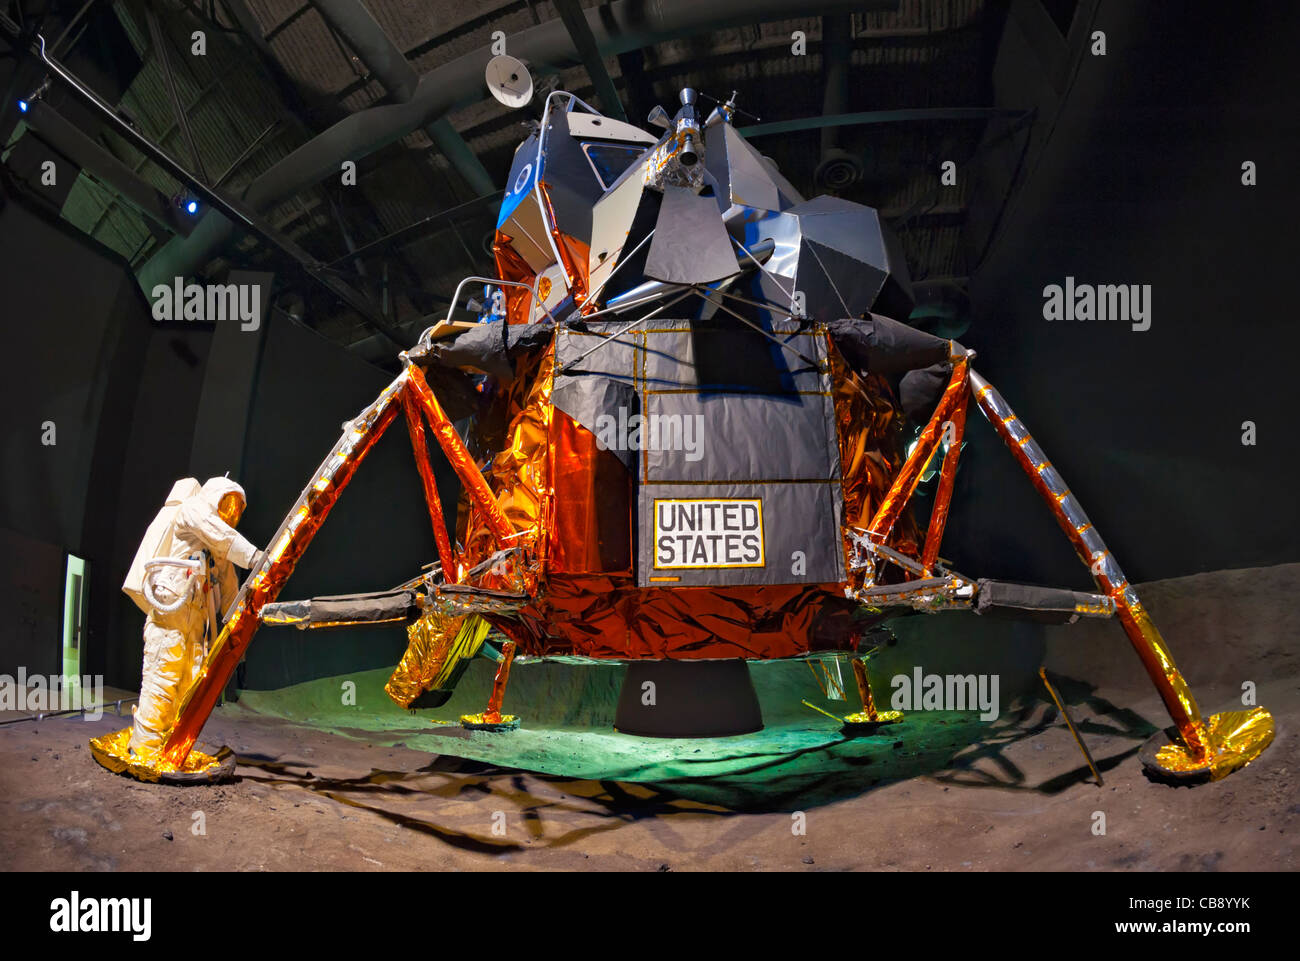 Nasa Museum Stock Photos  Nasa Museum Stock Images Alamy - Nasa museums in usa